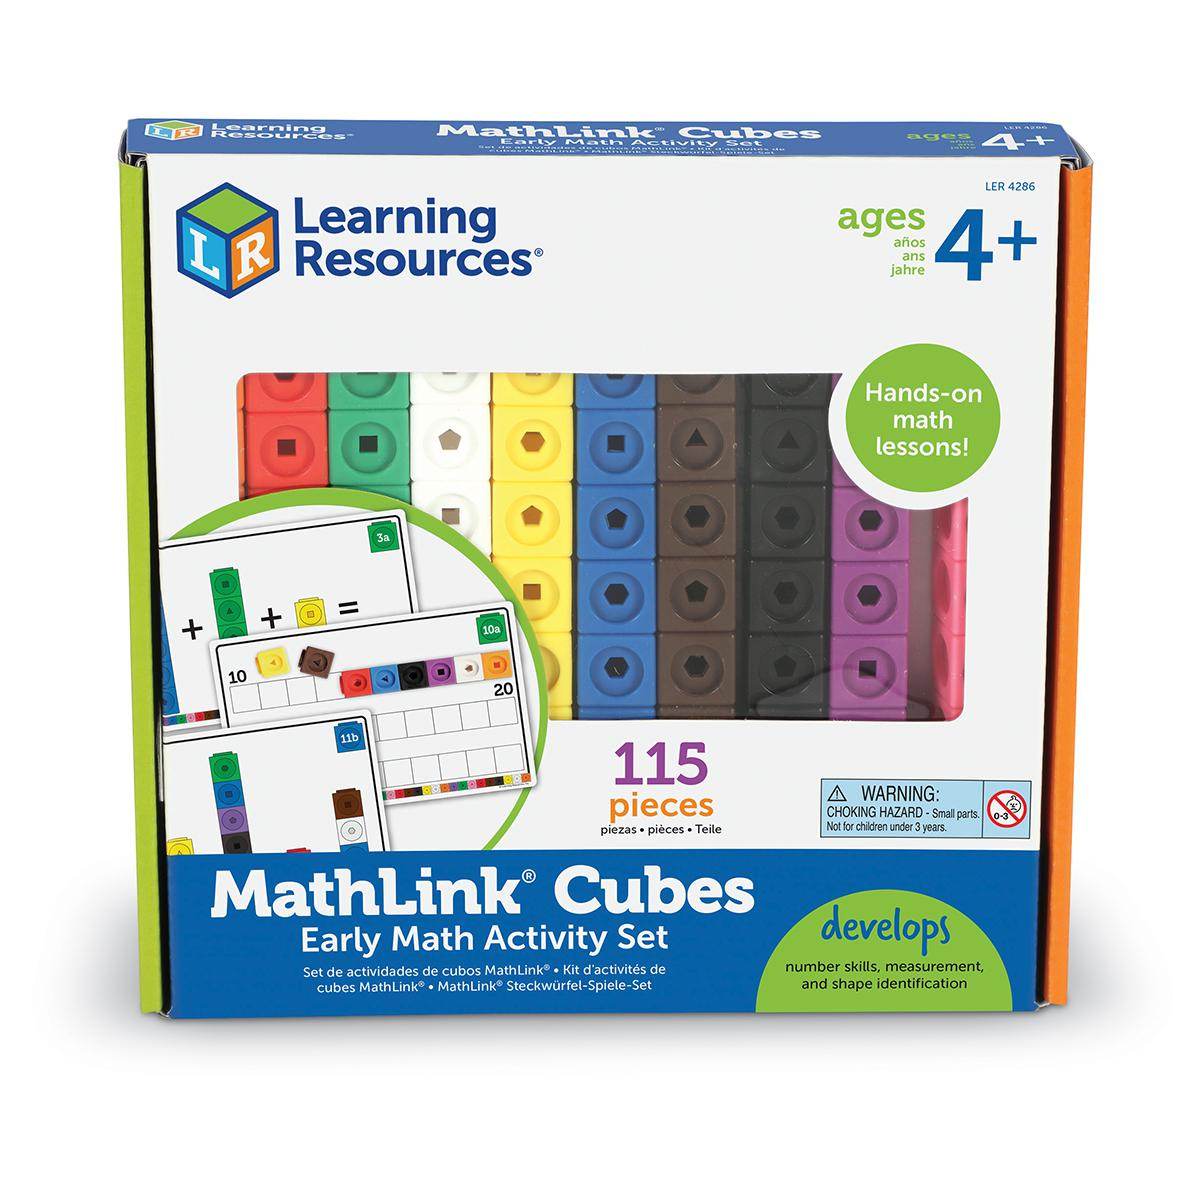 MathLink® Cubes: Early Math Activity Set